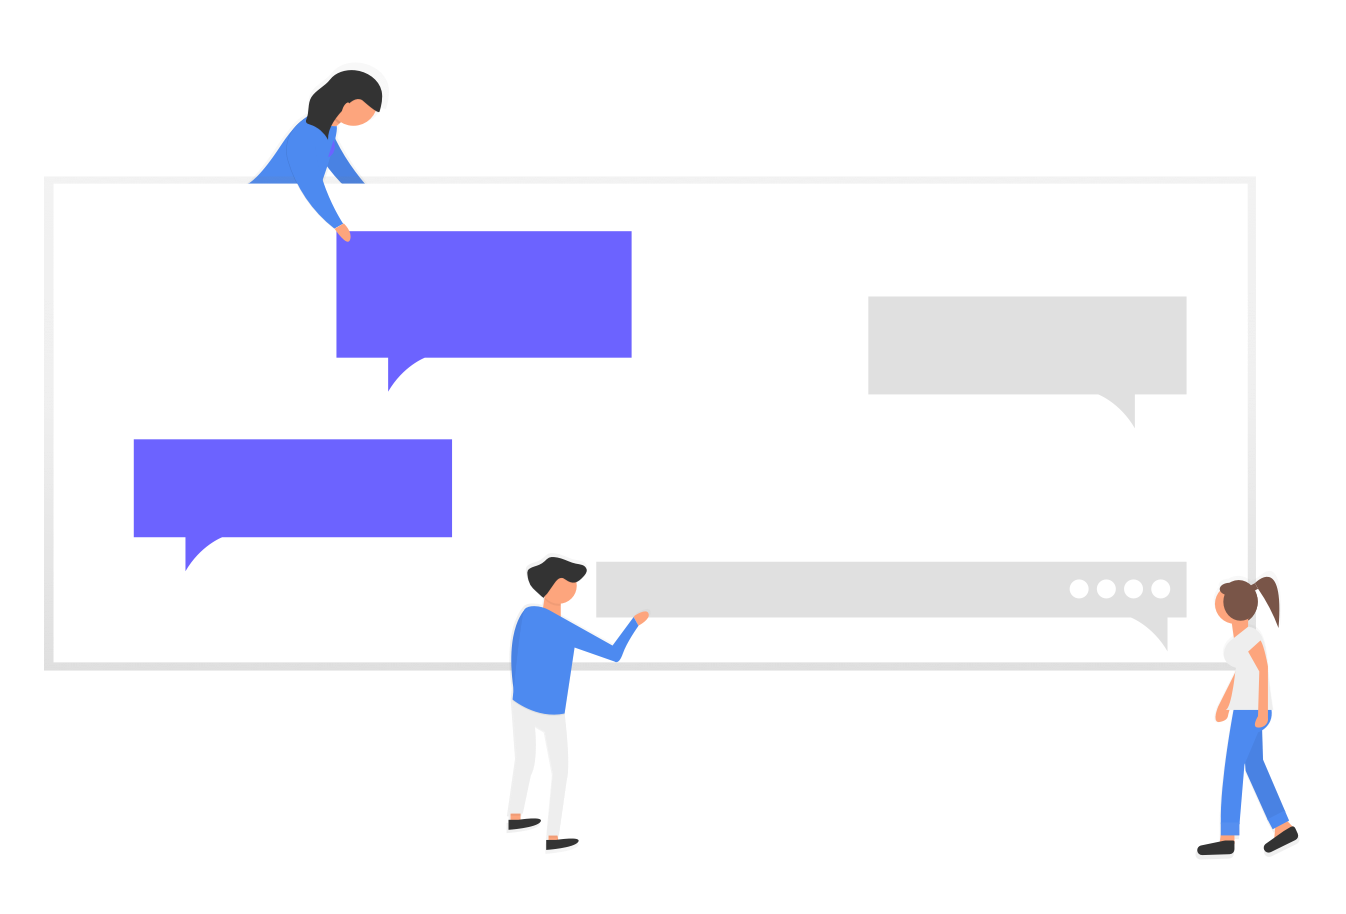 This is an illustration of three people pointing at different tooltips, which are a UI pattern common in onboarding. The tooltips are grey and purple.